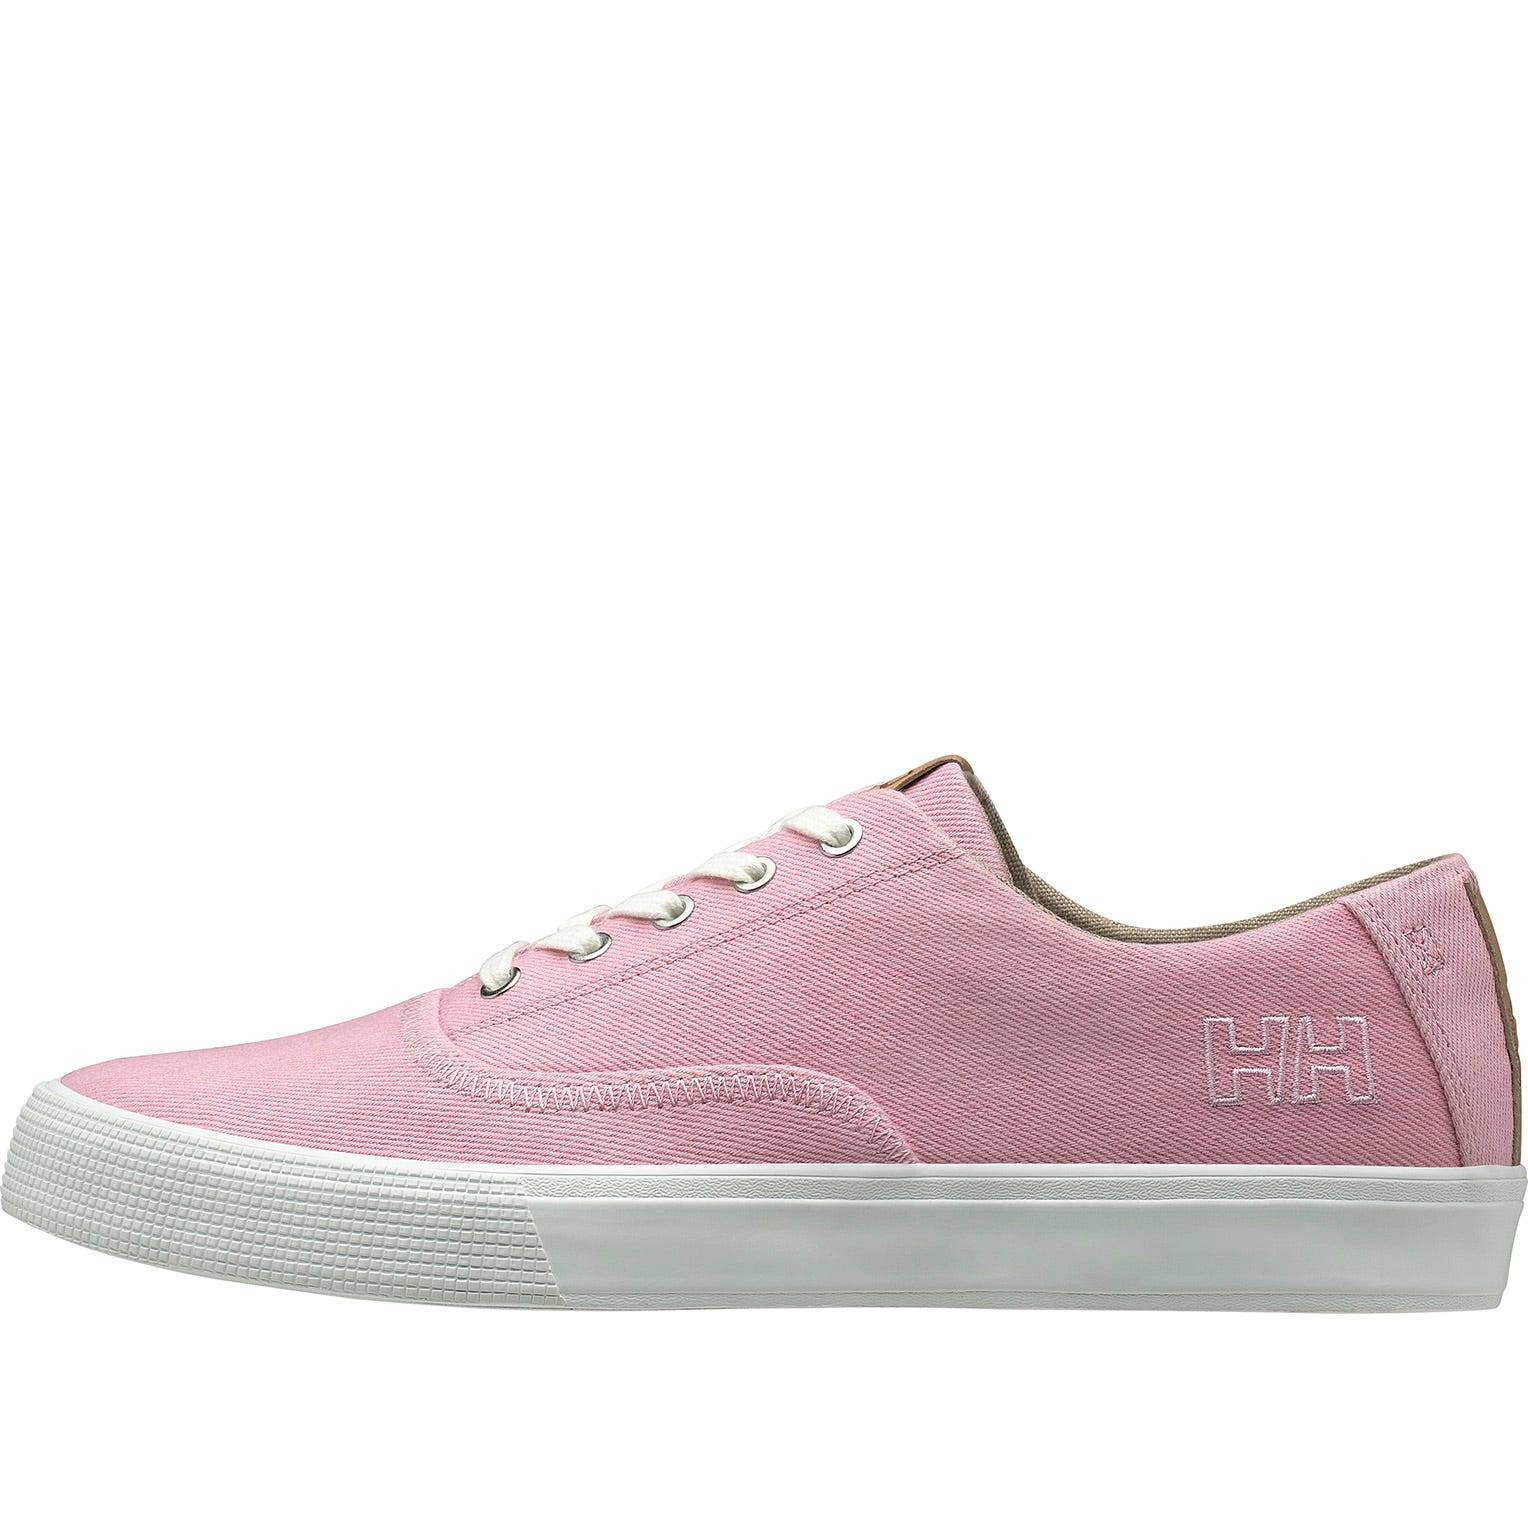 Helly Hansen Womens Casual Shoe Pink 4